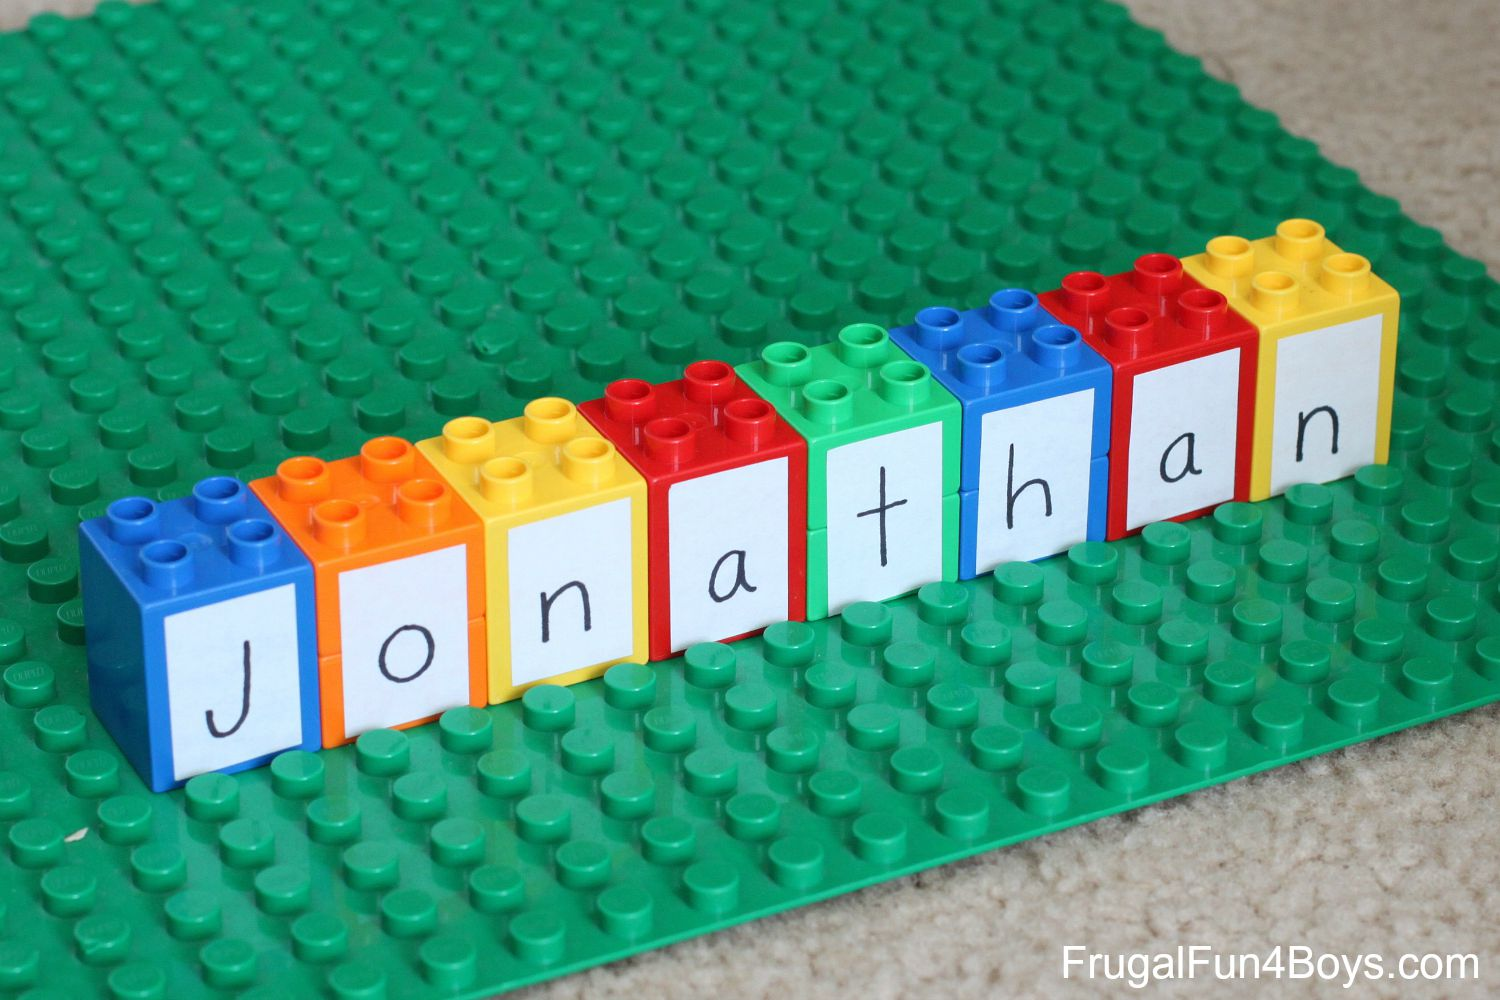 lego-name-Edited